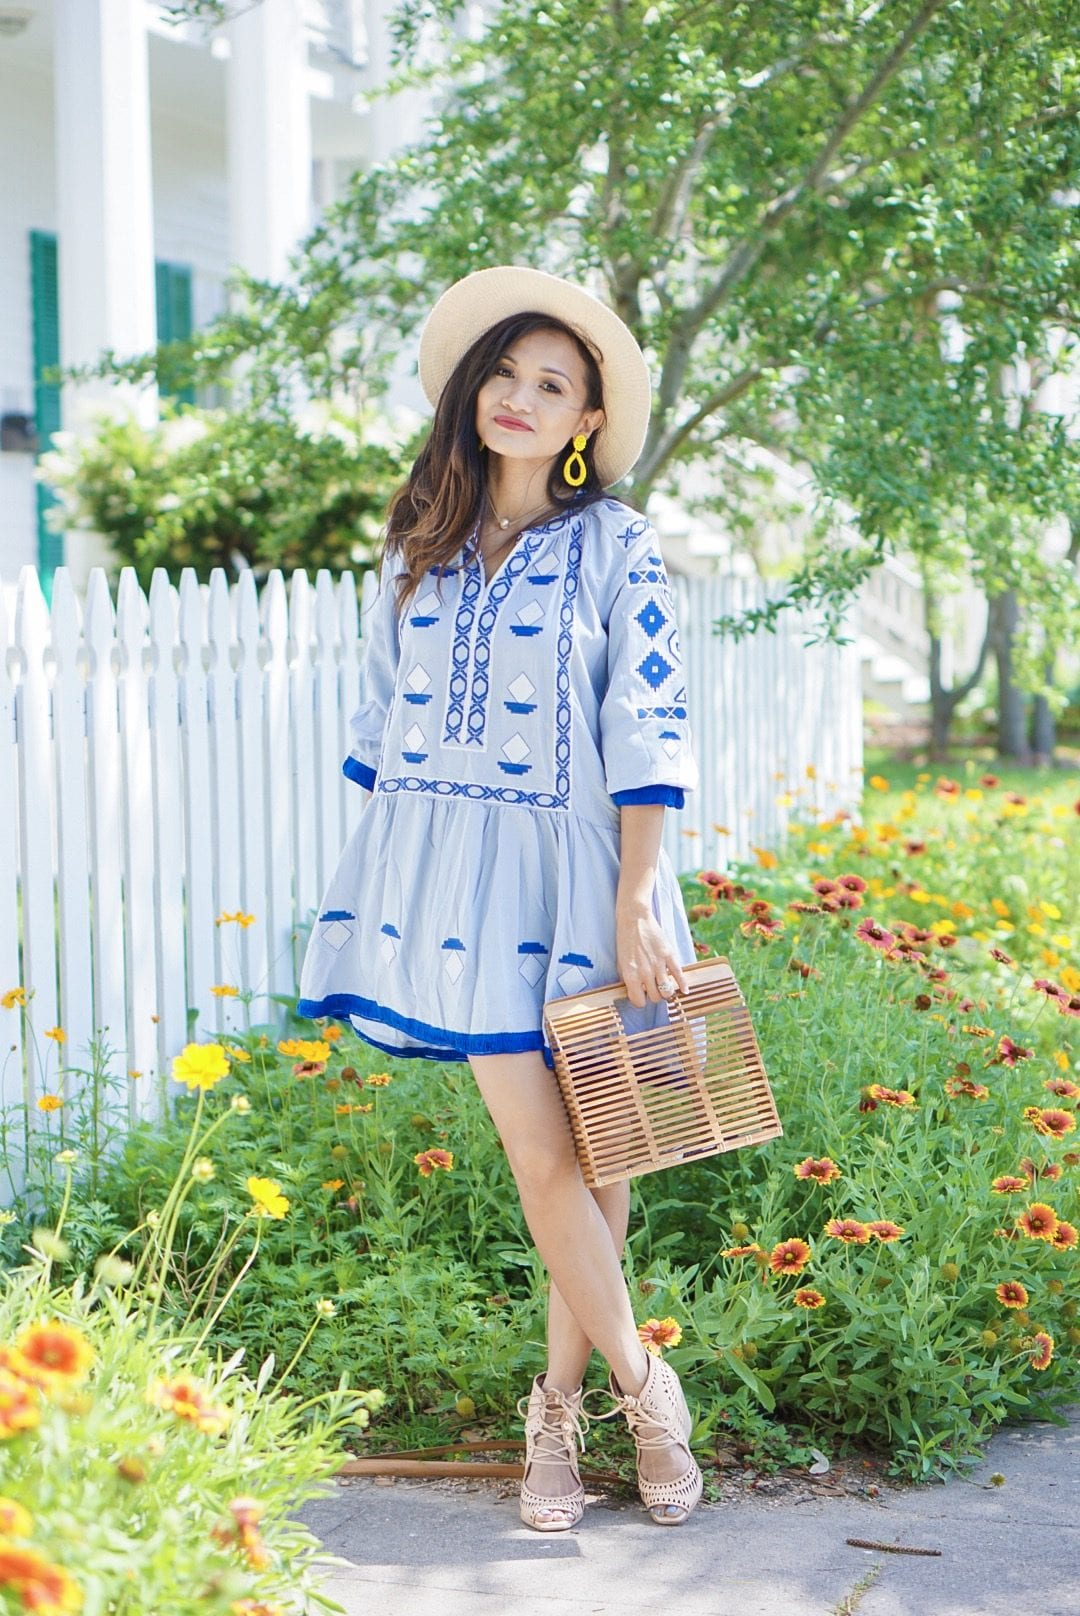 #springstyle #springfashion #summerdress #summerfashion, chicwish, Jeffrey Cambell Rodillo wedges, embroidered dress, bamboo bag, #ltkunder50, #liketoknow.it, blogging tips, rewardstyle, blue dress, beach dress